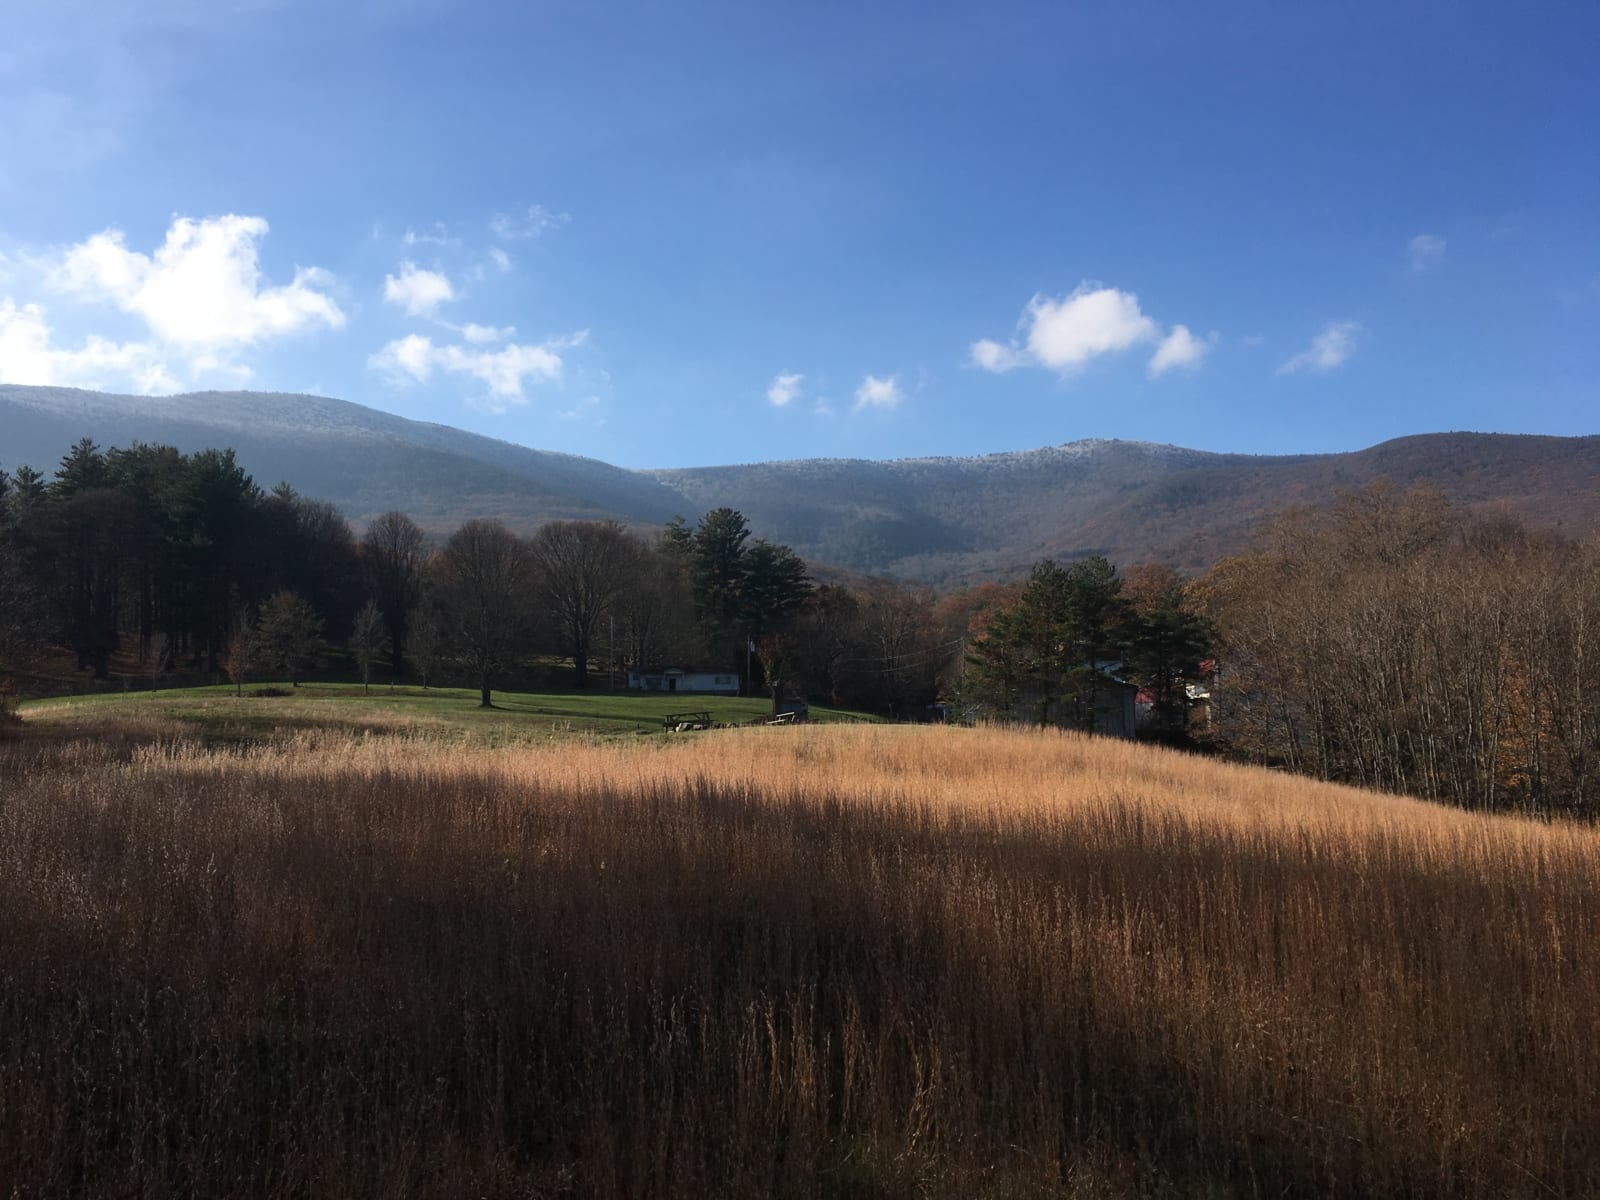 Catskills Mountains in fall